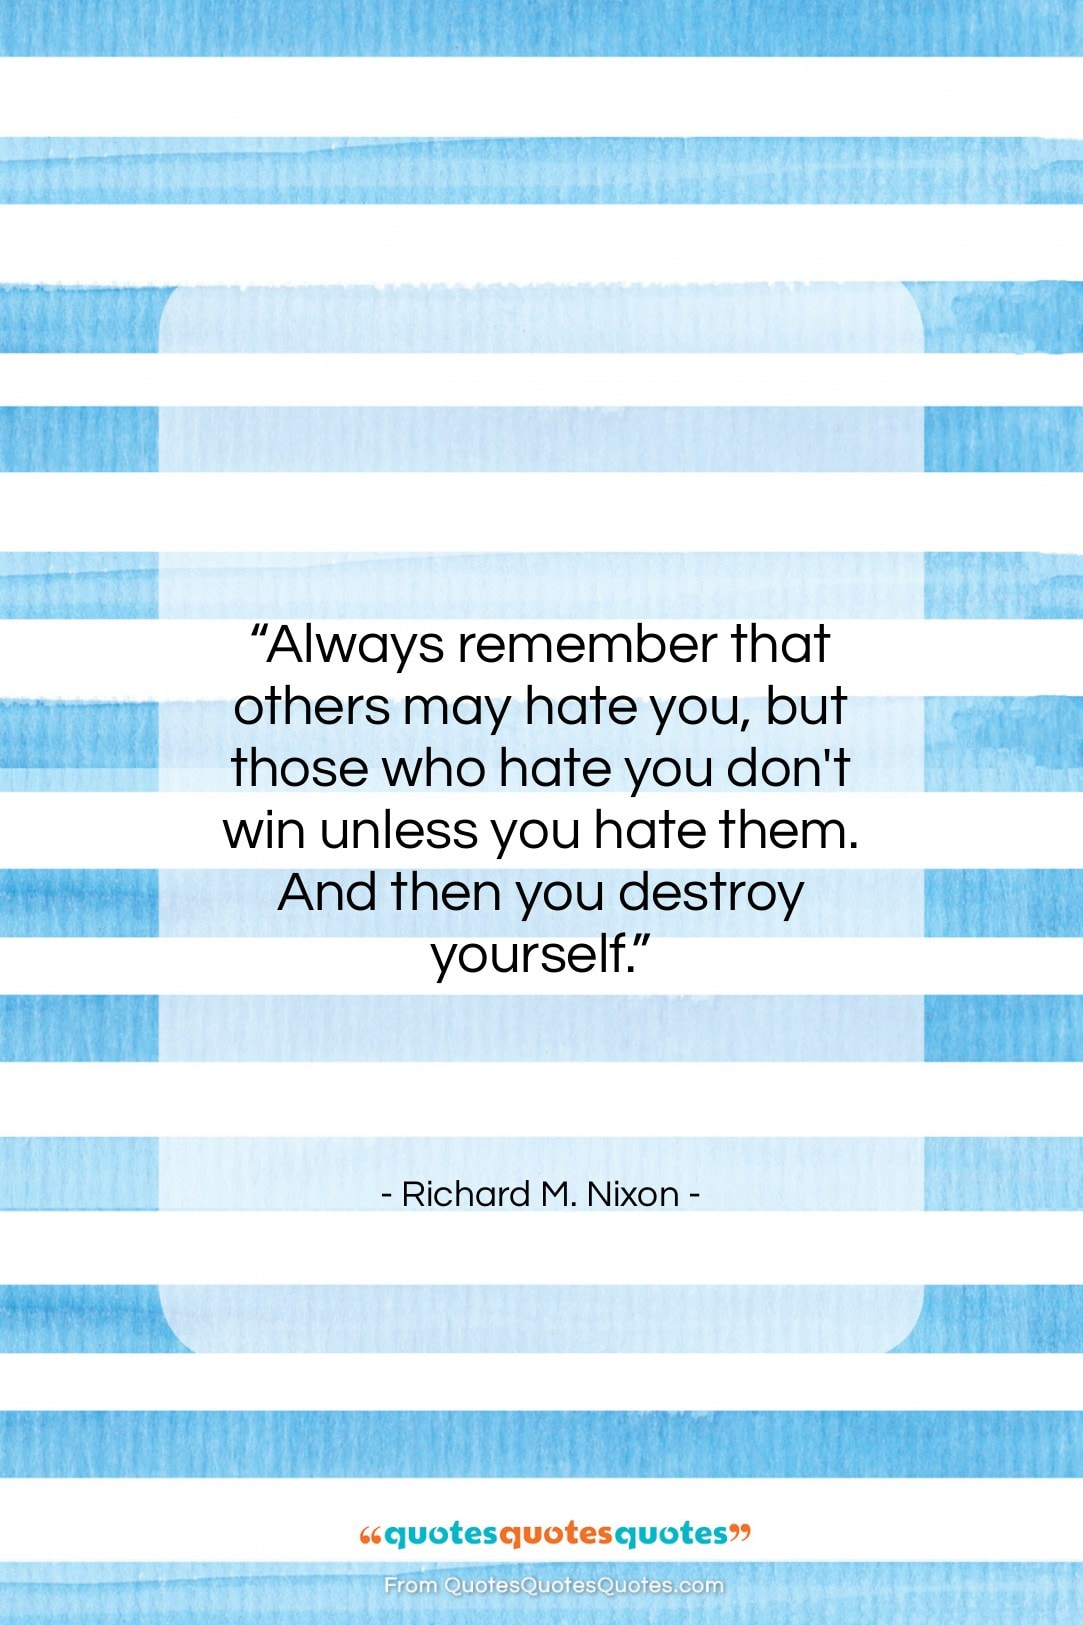 """Richard M. Nixon quote: """"Always remember that others may hate you,…""""- at QuotesQuotesQuotes.com"""